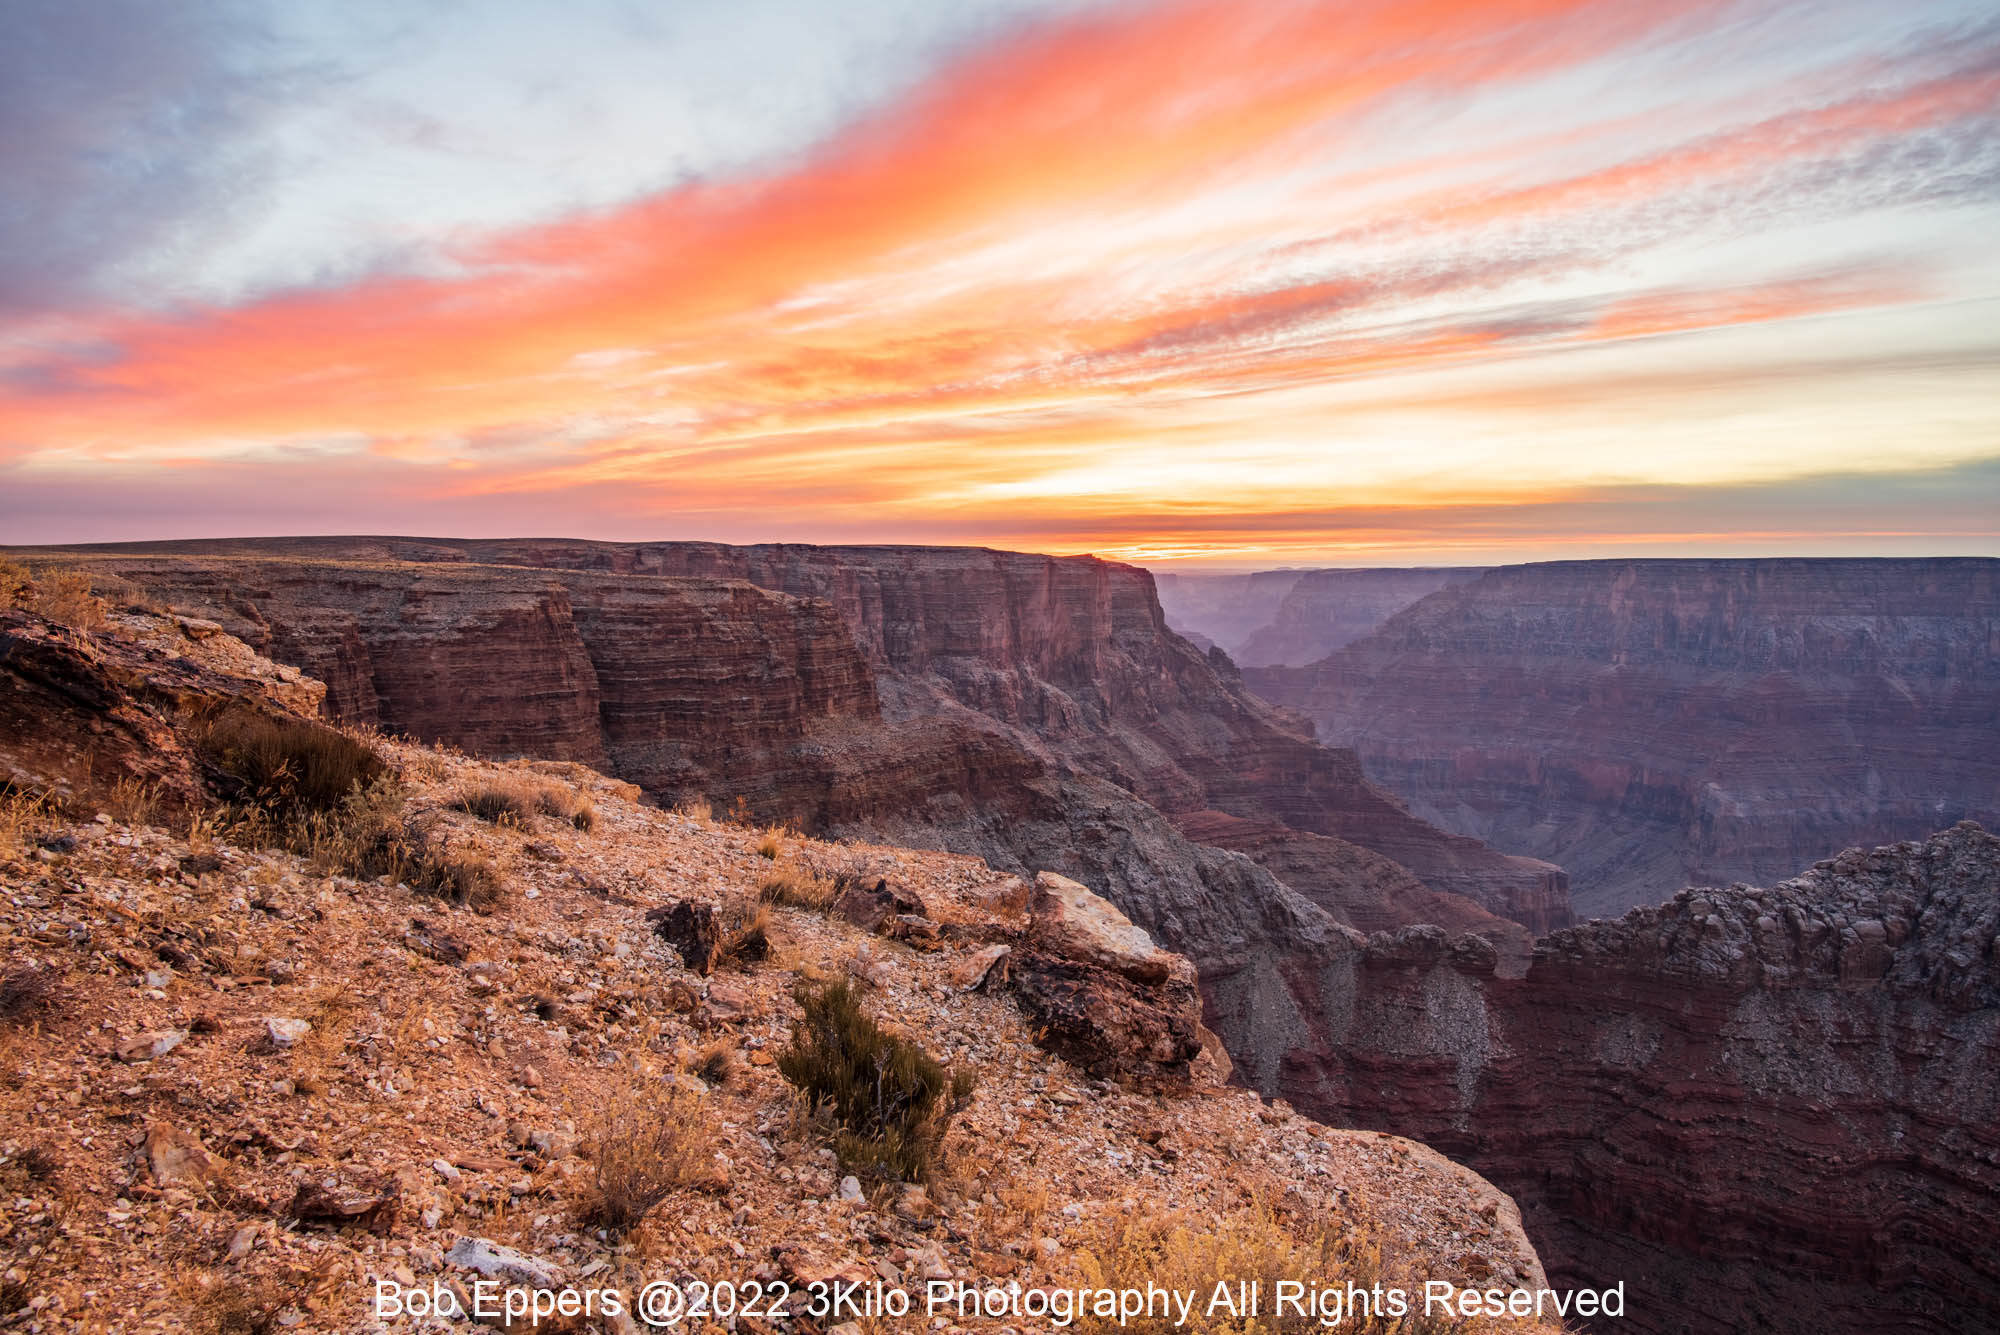 Photo of the North Rim of the Grand Canyon at Sunrise